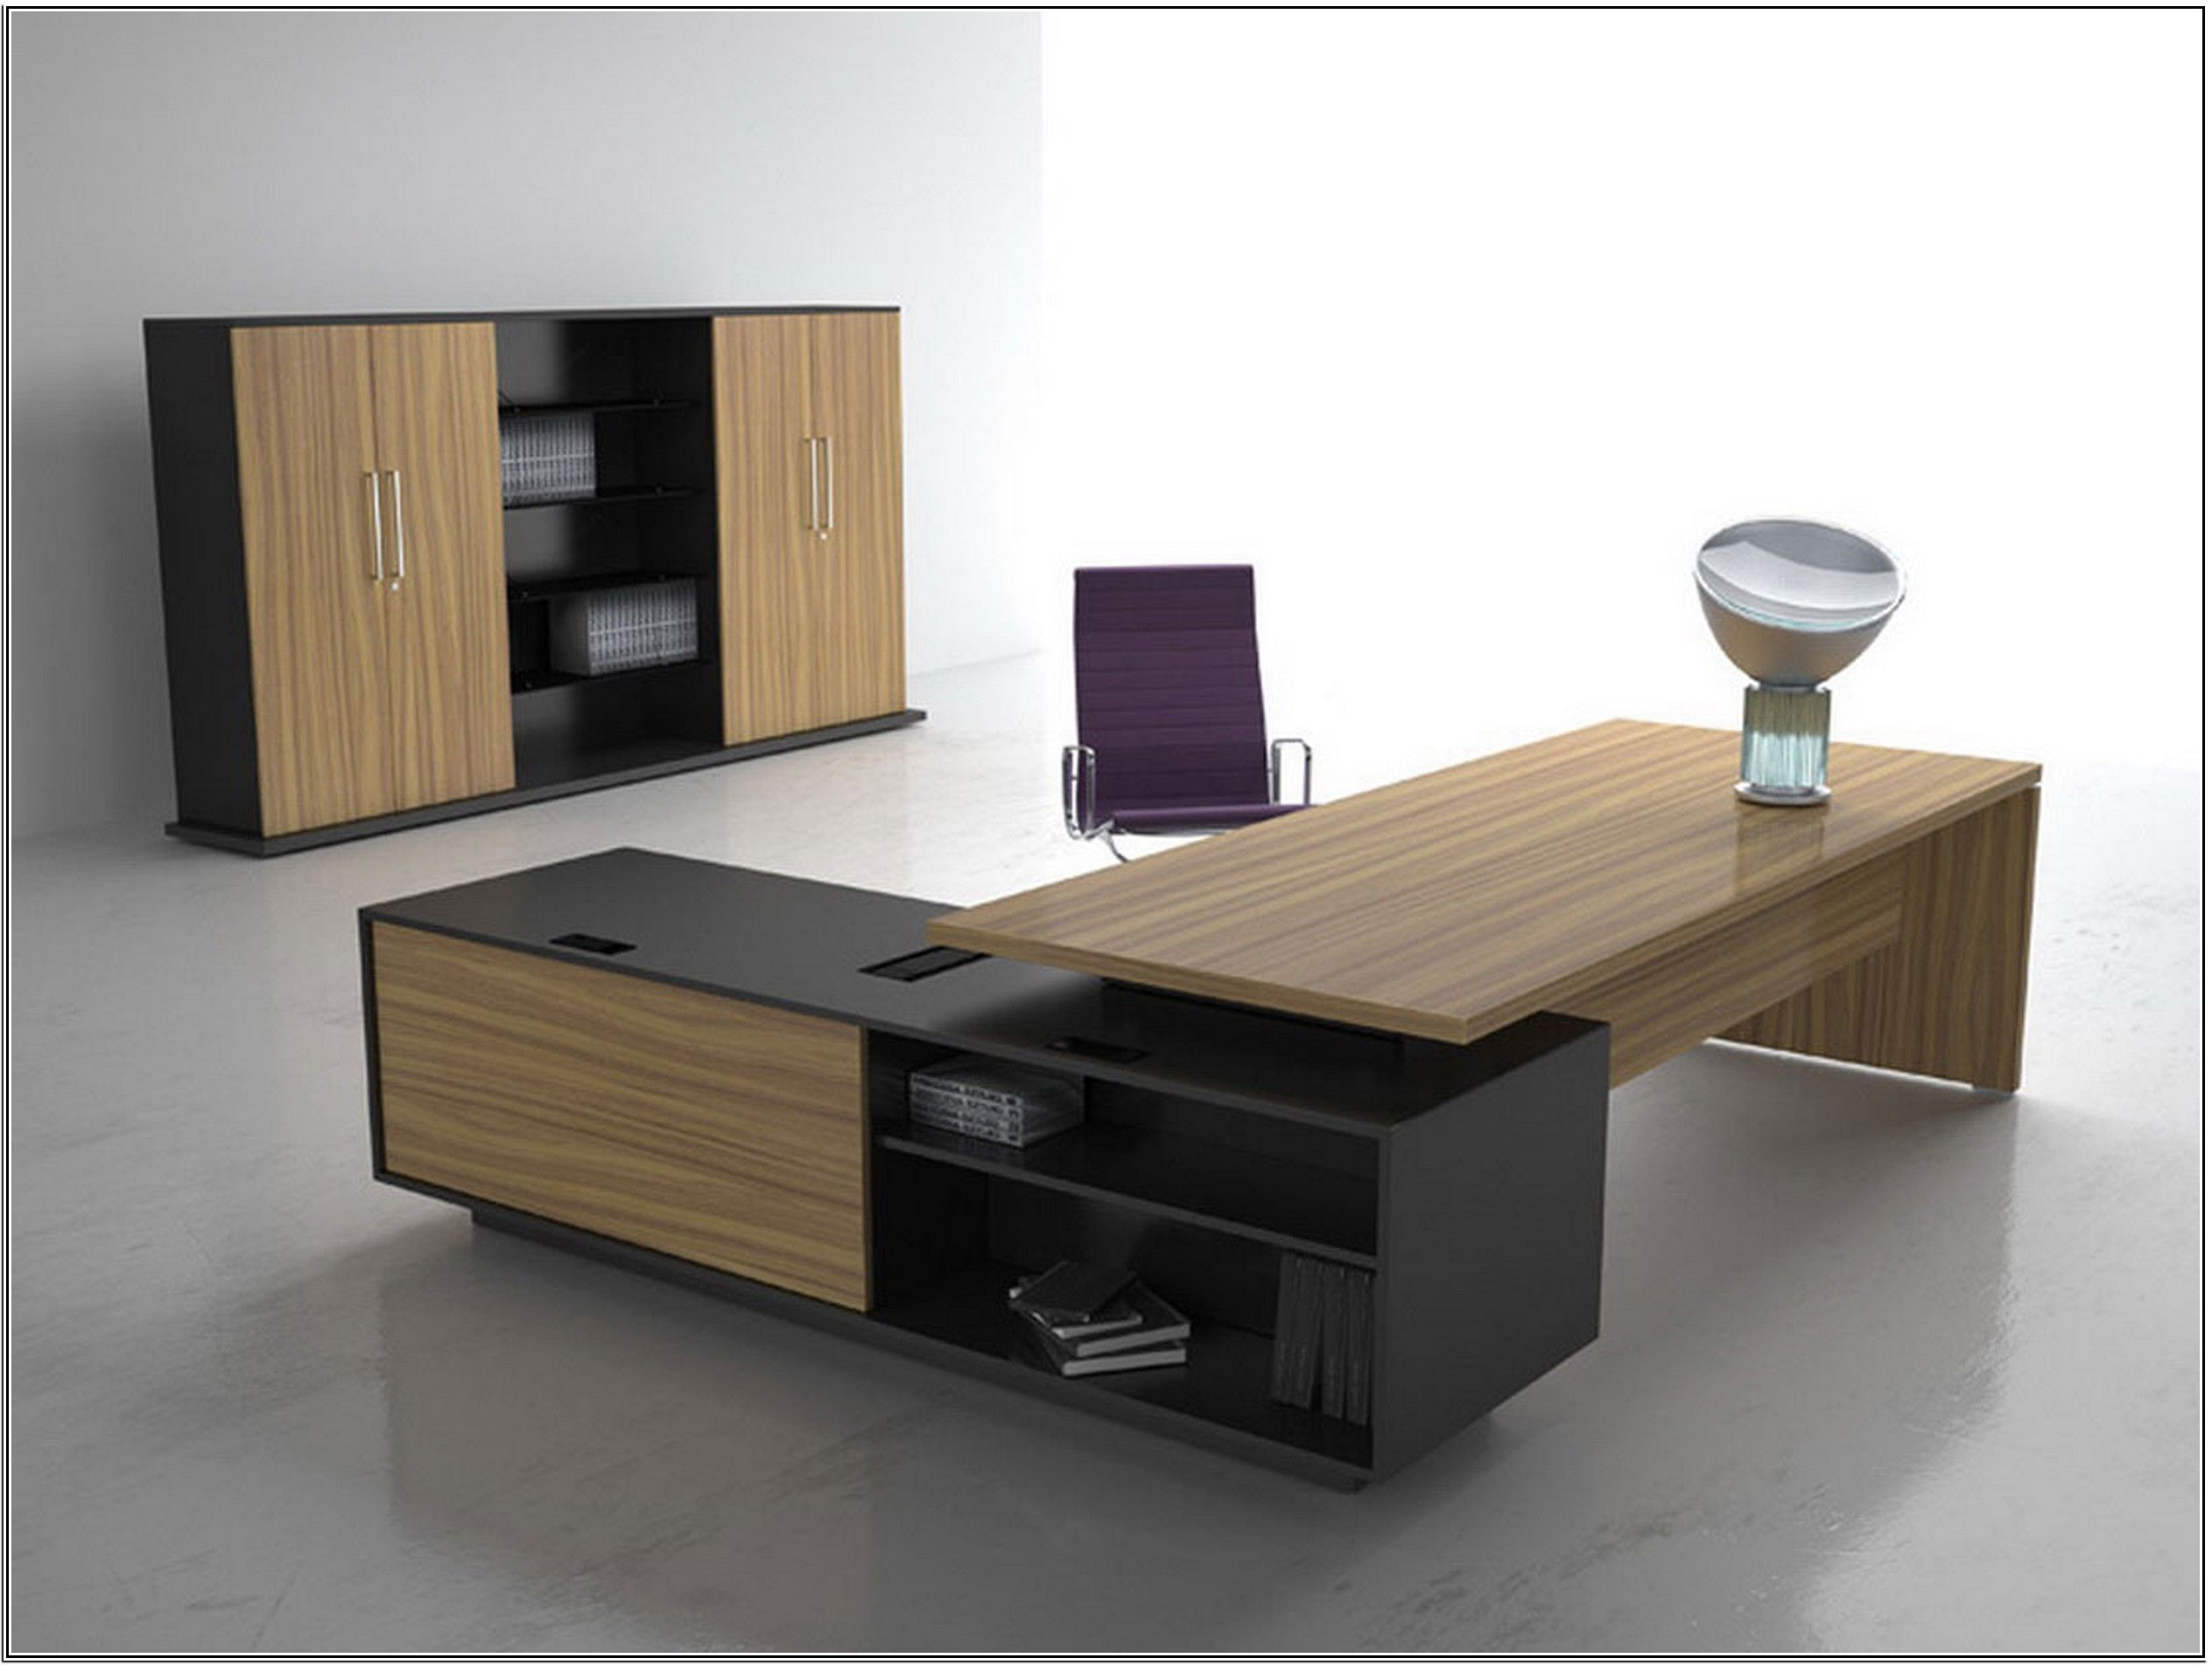 Luxury Modern Home Office Desk Design Idea In Brown And Black With